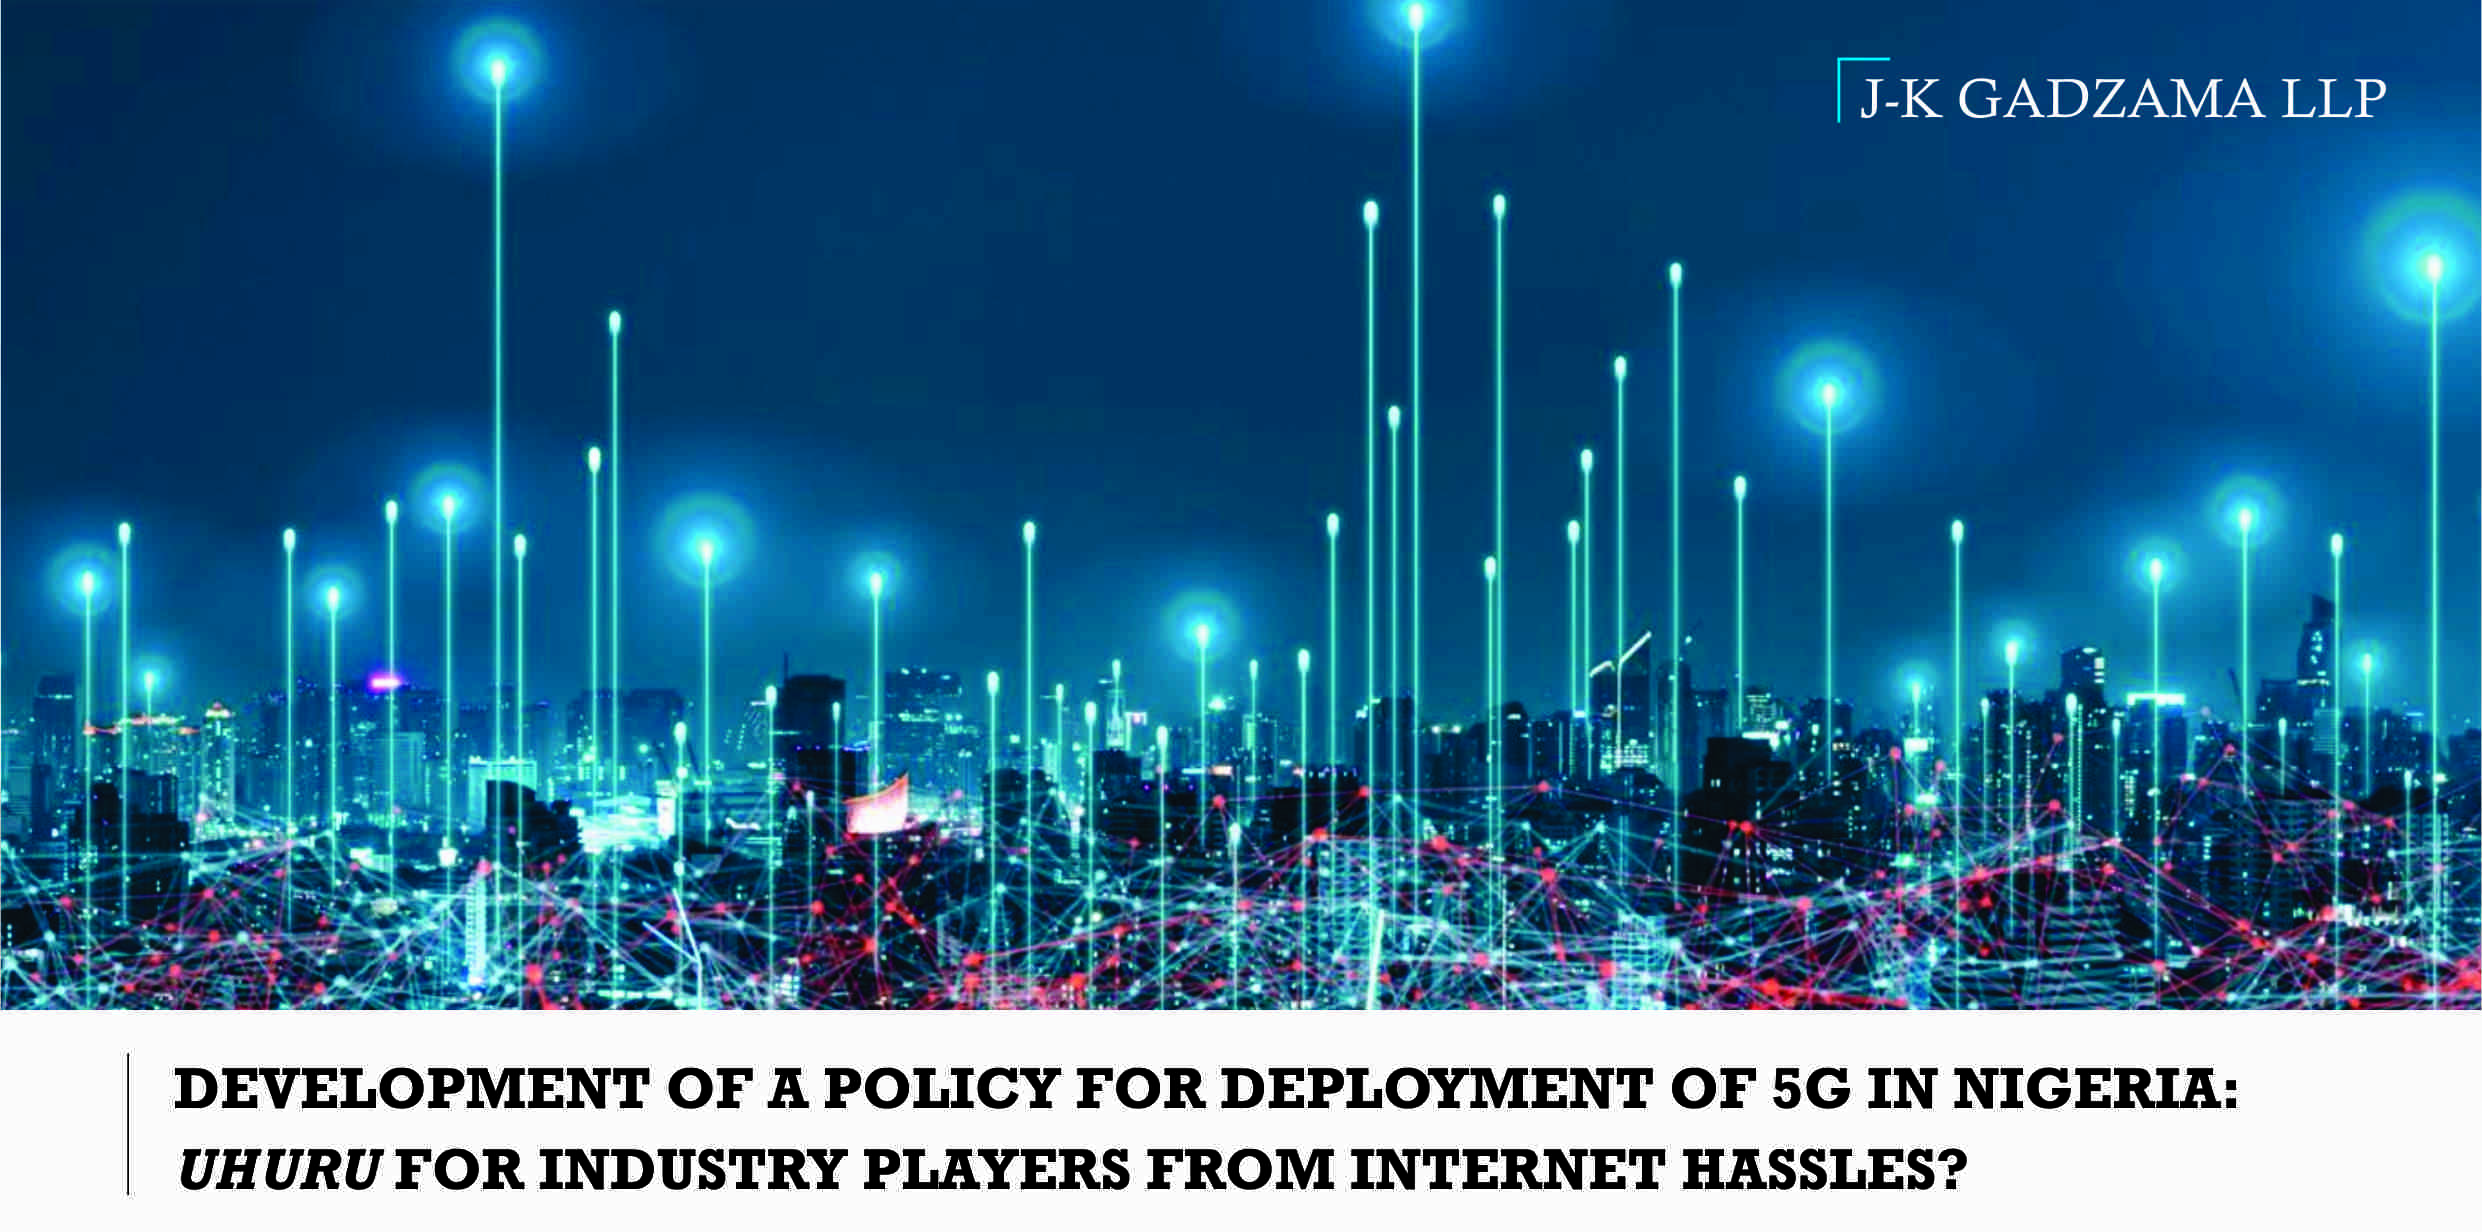 Development of a Policy for Deployment of 5G in Nigeria: UHURU for Industry Players from Internet Hassles?